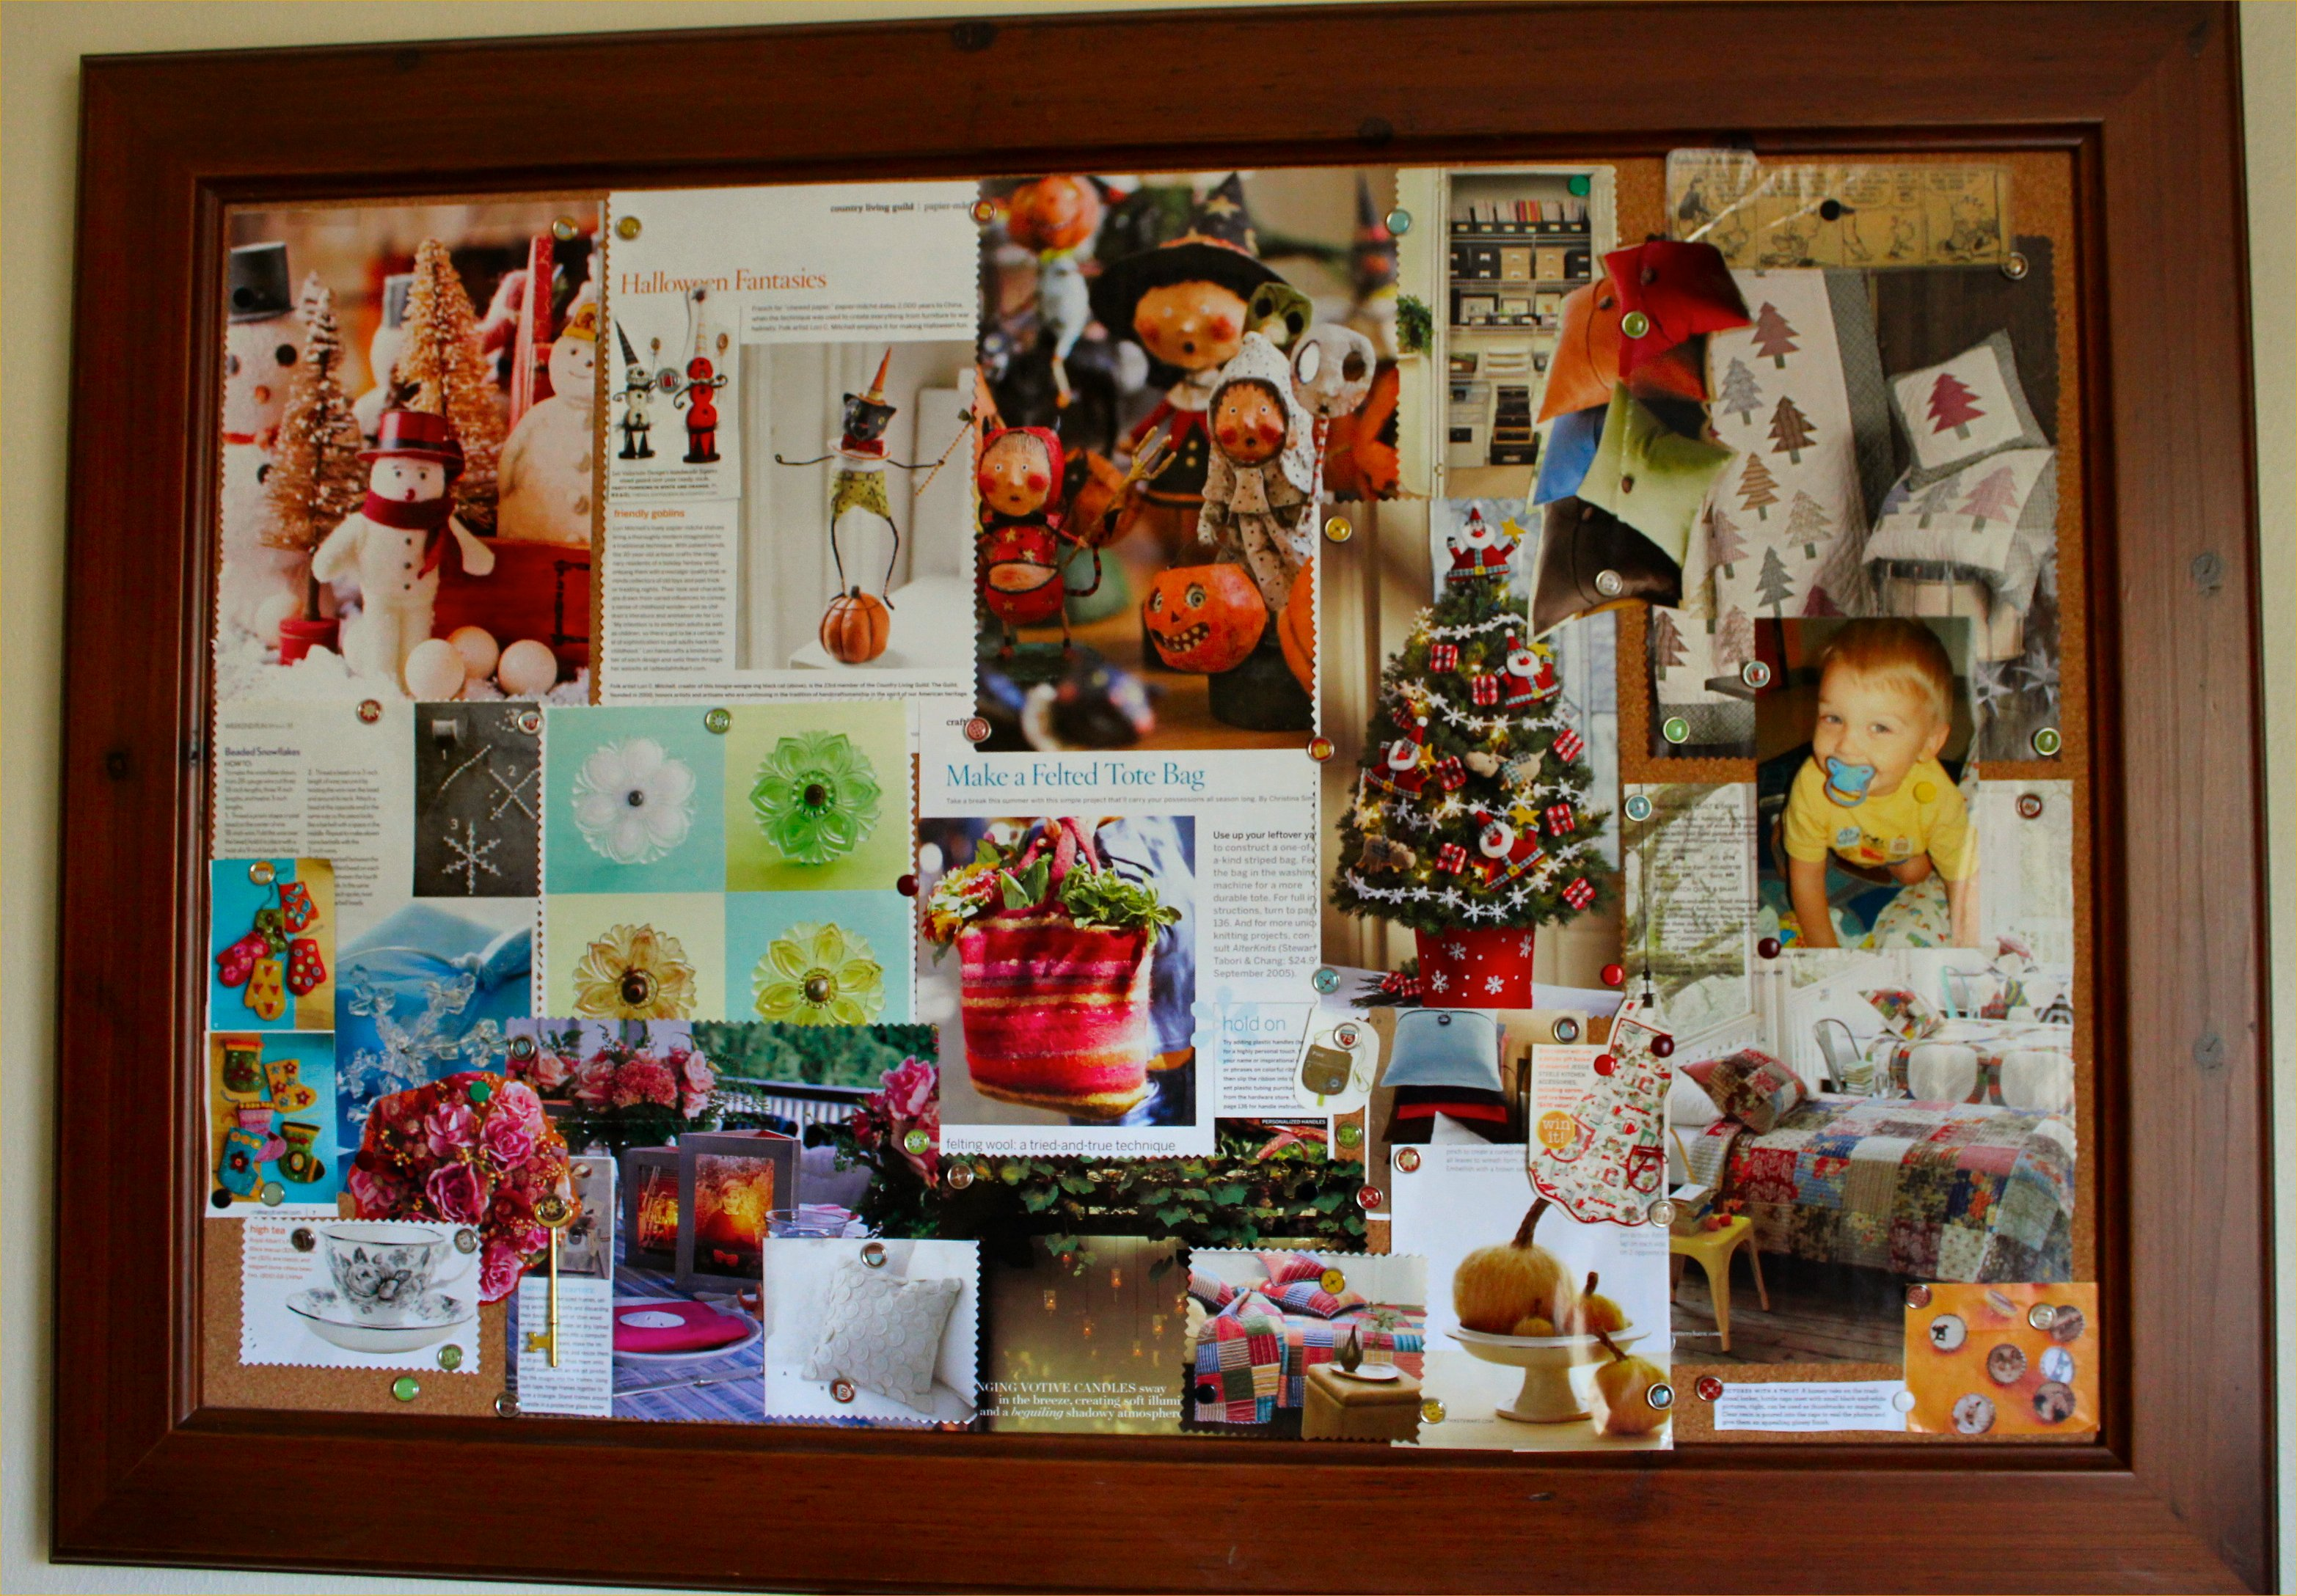 Where do you find your inspiration inside nanabread 39 s head for Cork board ideas